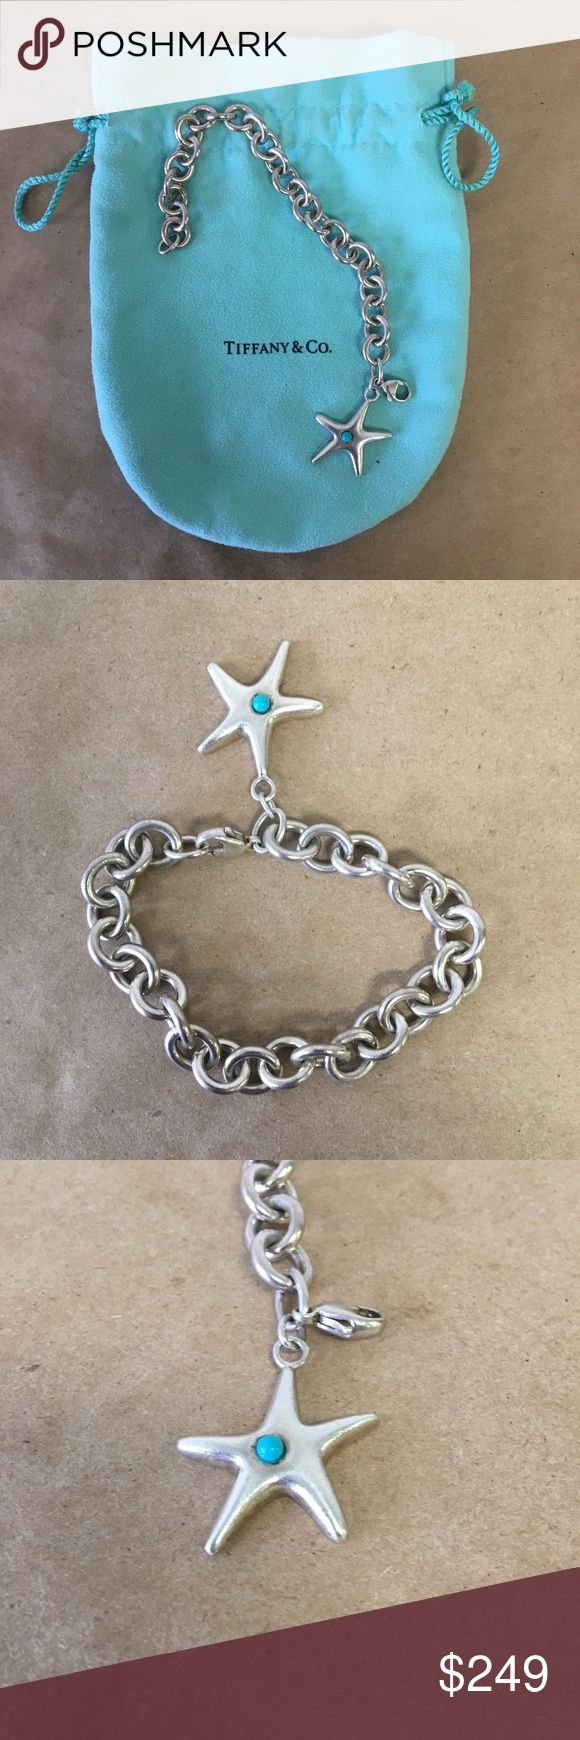 """Tiffany Elsa Peretti Silver Starfish 7"""" Bracelet! Tiffany Elsa Peretti .925 Sterling Silver Starfish 7"""" Bracelet w/ Turquoise Inventory #  5975-4 Everything we sell is 100% guaranteed authentic! We list dozens of items every day, so check our other listings out! We are Meta Exchange, a resale store in Baton Rouge, LA! Sorry, no trades. REASONABLE offers will be considered. We ship same/next day. Thanks! Follow us: FB metaexchange  IG meta225 Tiffany & Co. Jewelry Bracelets"""